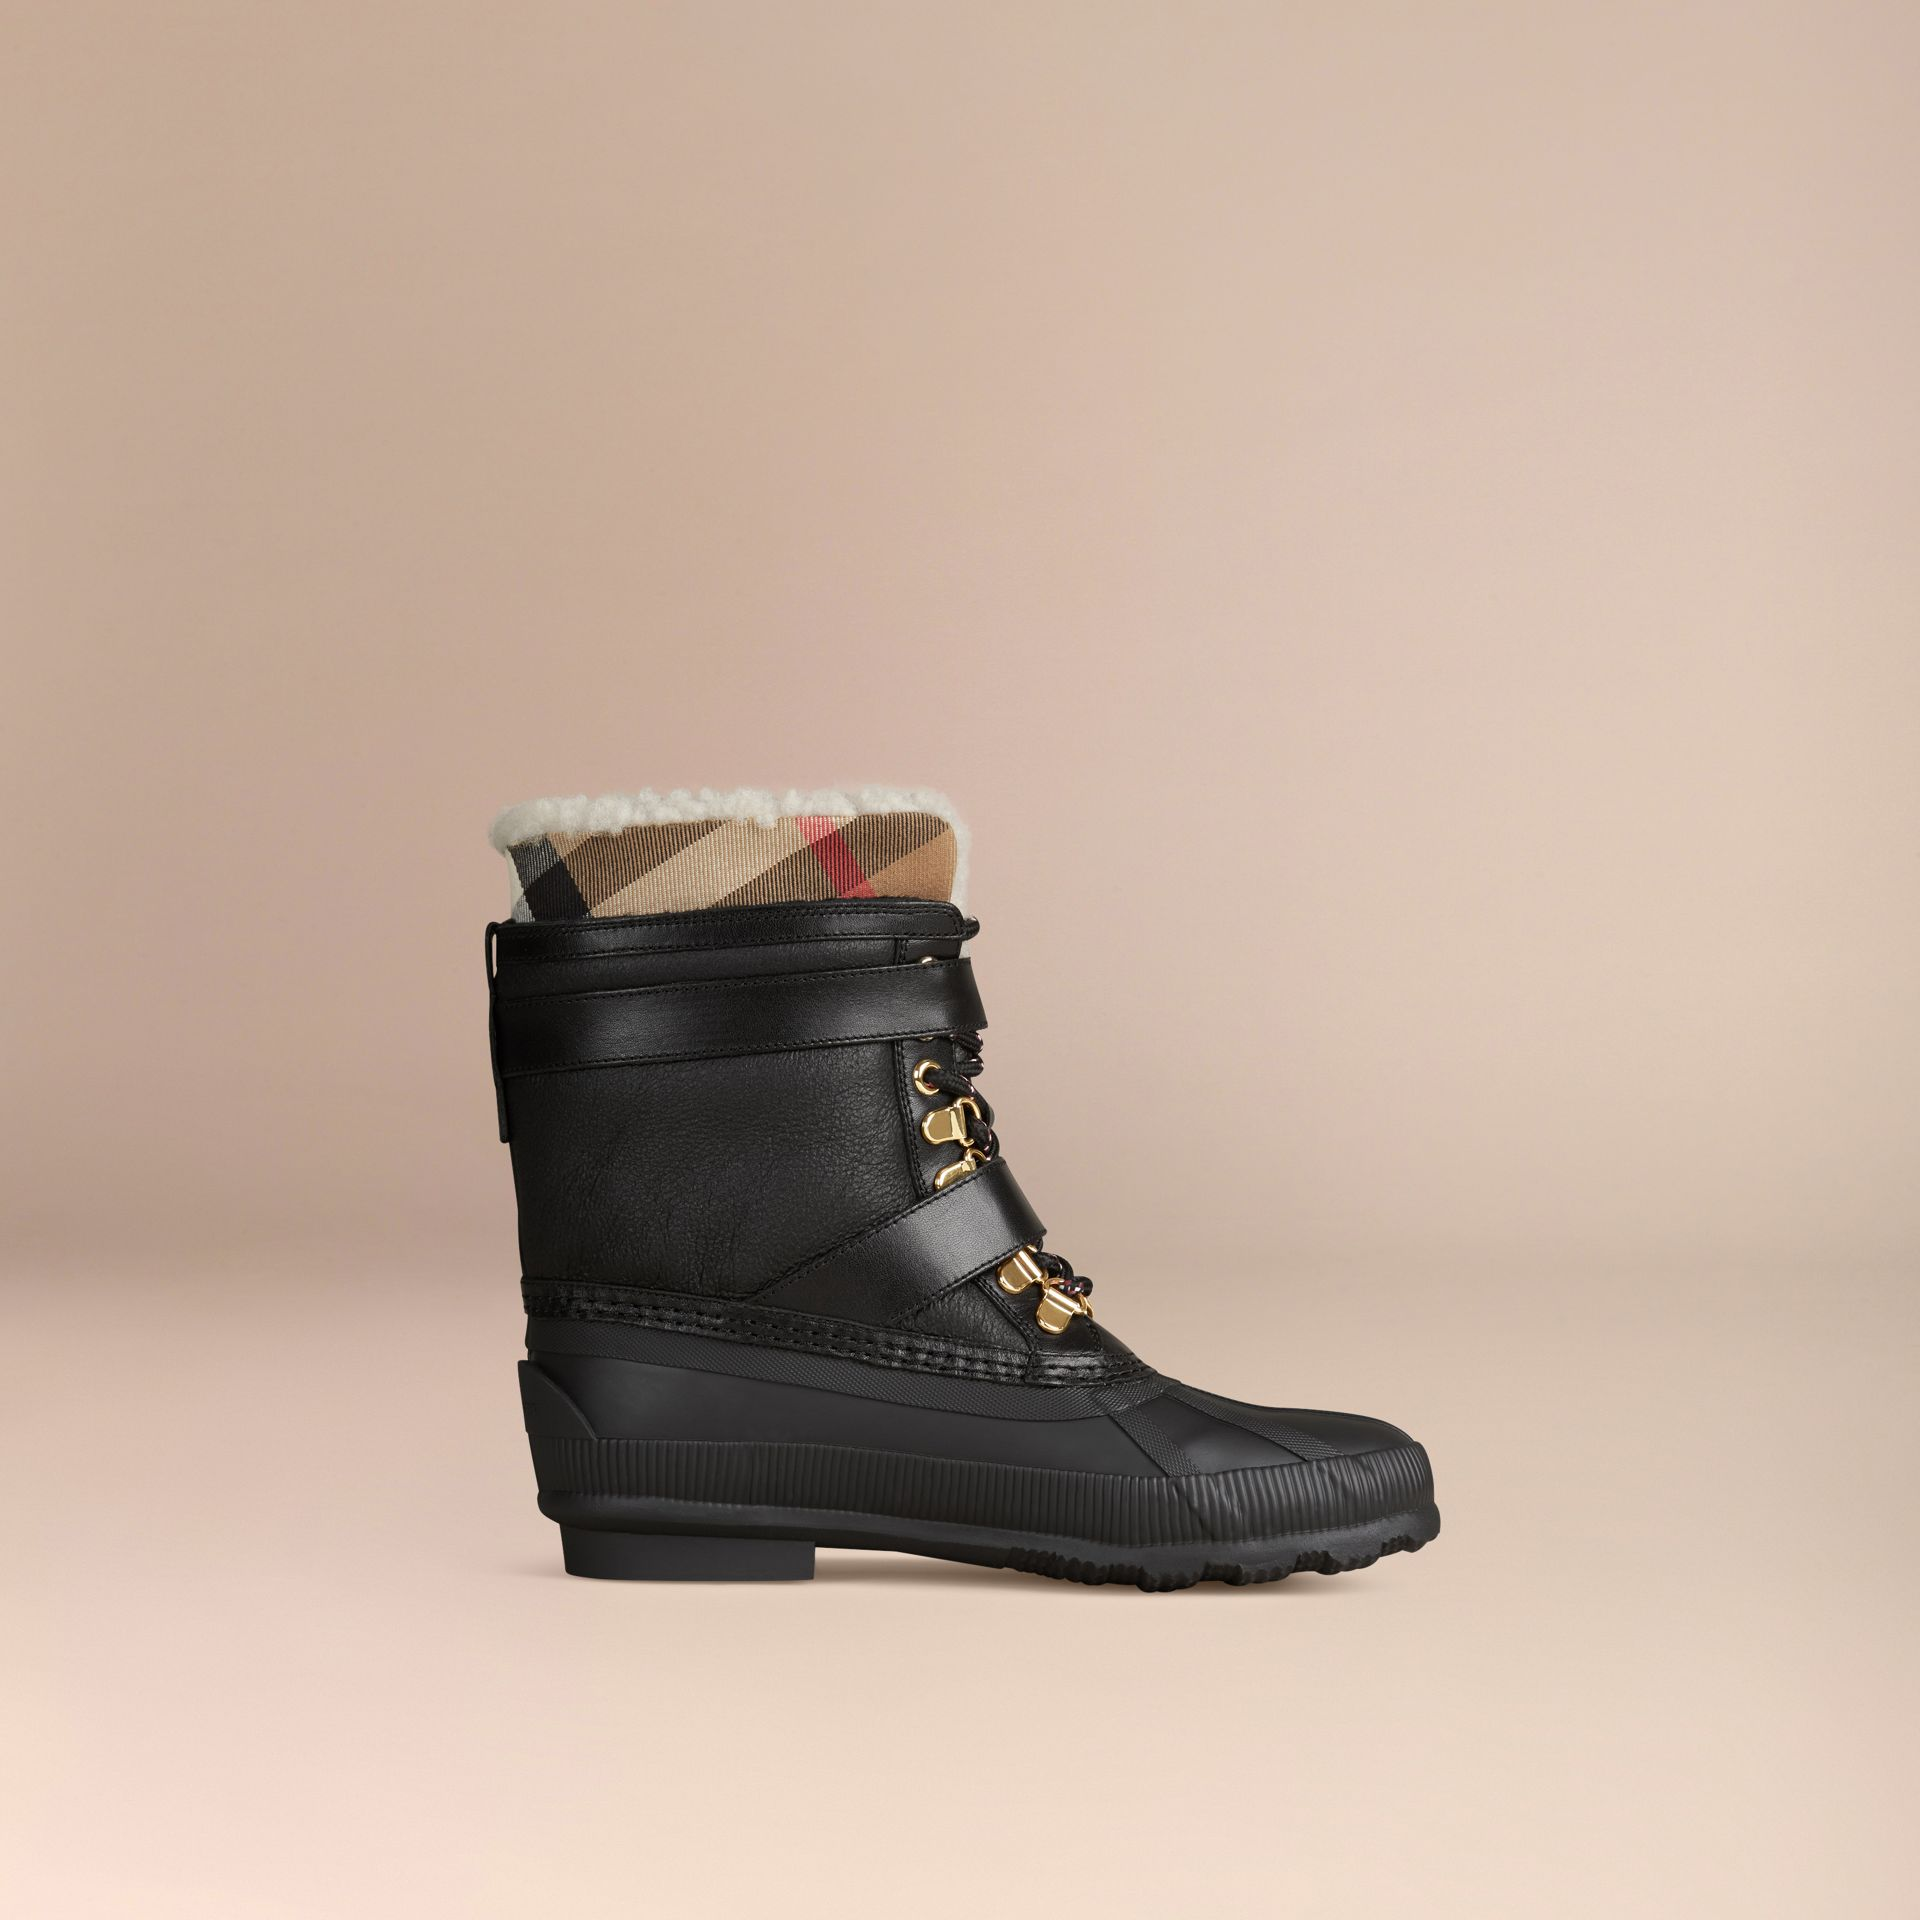 Sueded Shearling and Check Duck Boots in Black - Women | Burberry Singapore - gallery image 4